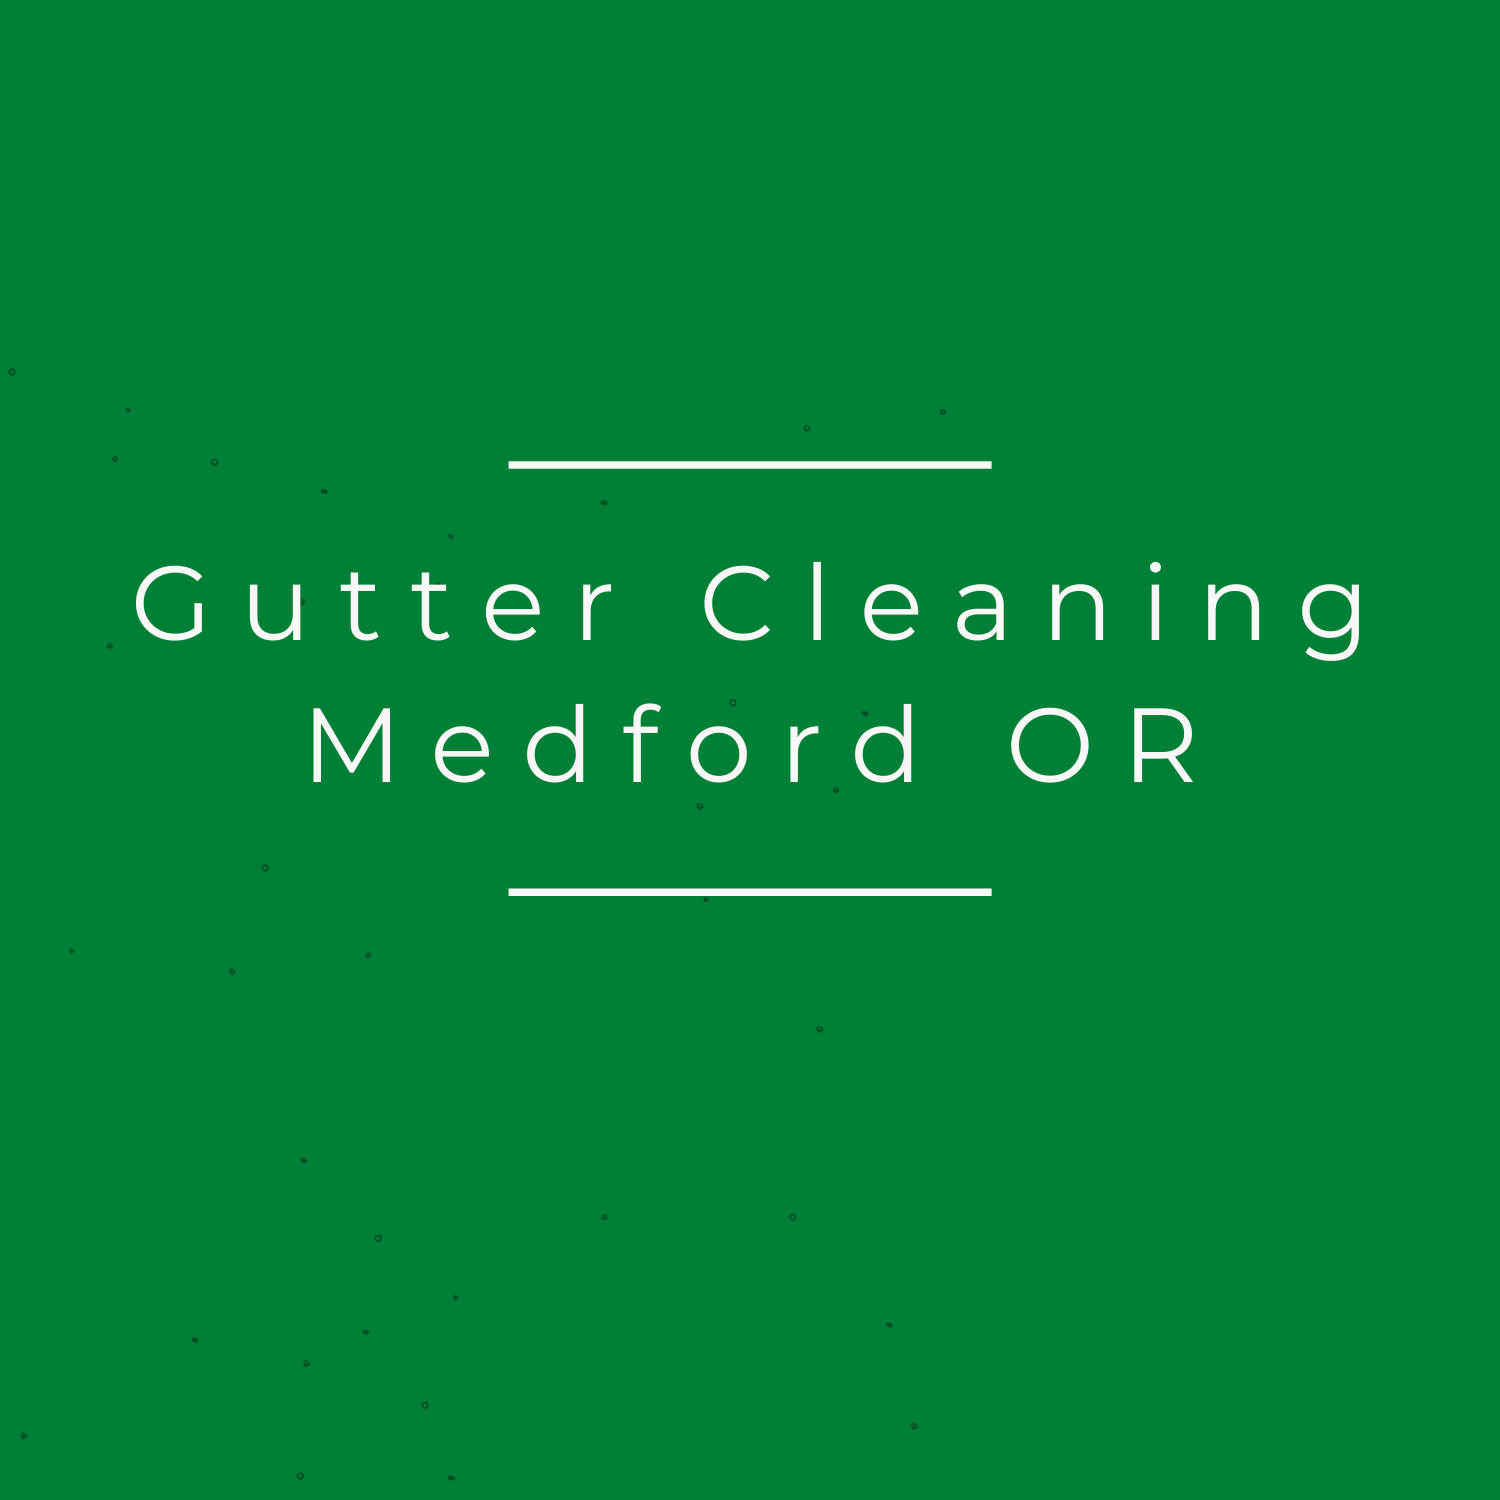 Gutter Cleaning Medford OR